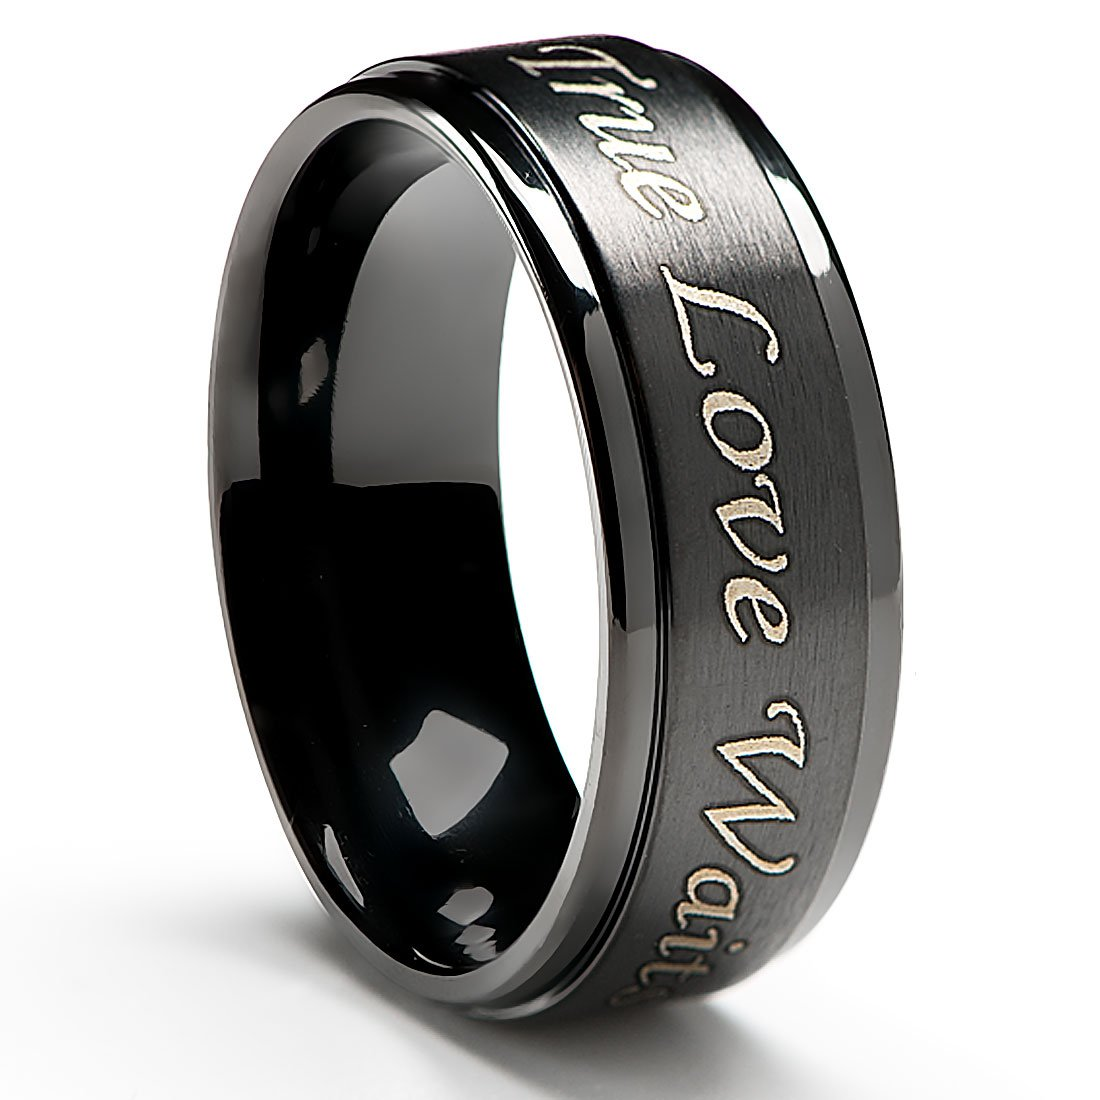 Cavalier Jewelers Purity Ring - True Love Waits - Black Plated Titanium Band (8mm wide) - Men's & Women's Sizes [Size 8]